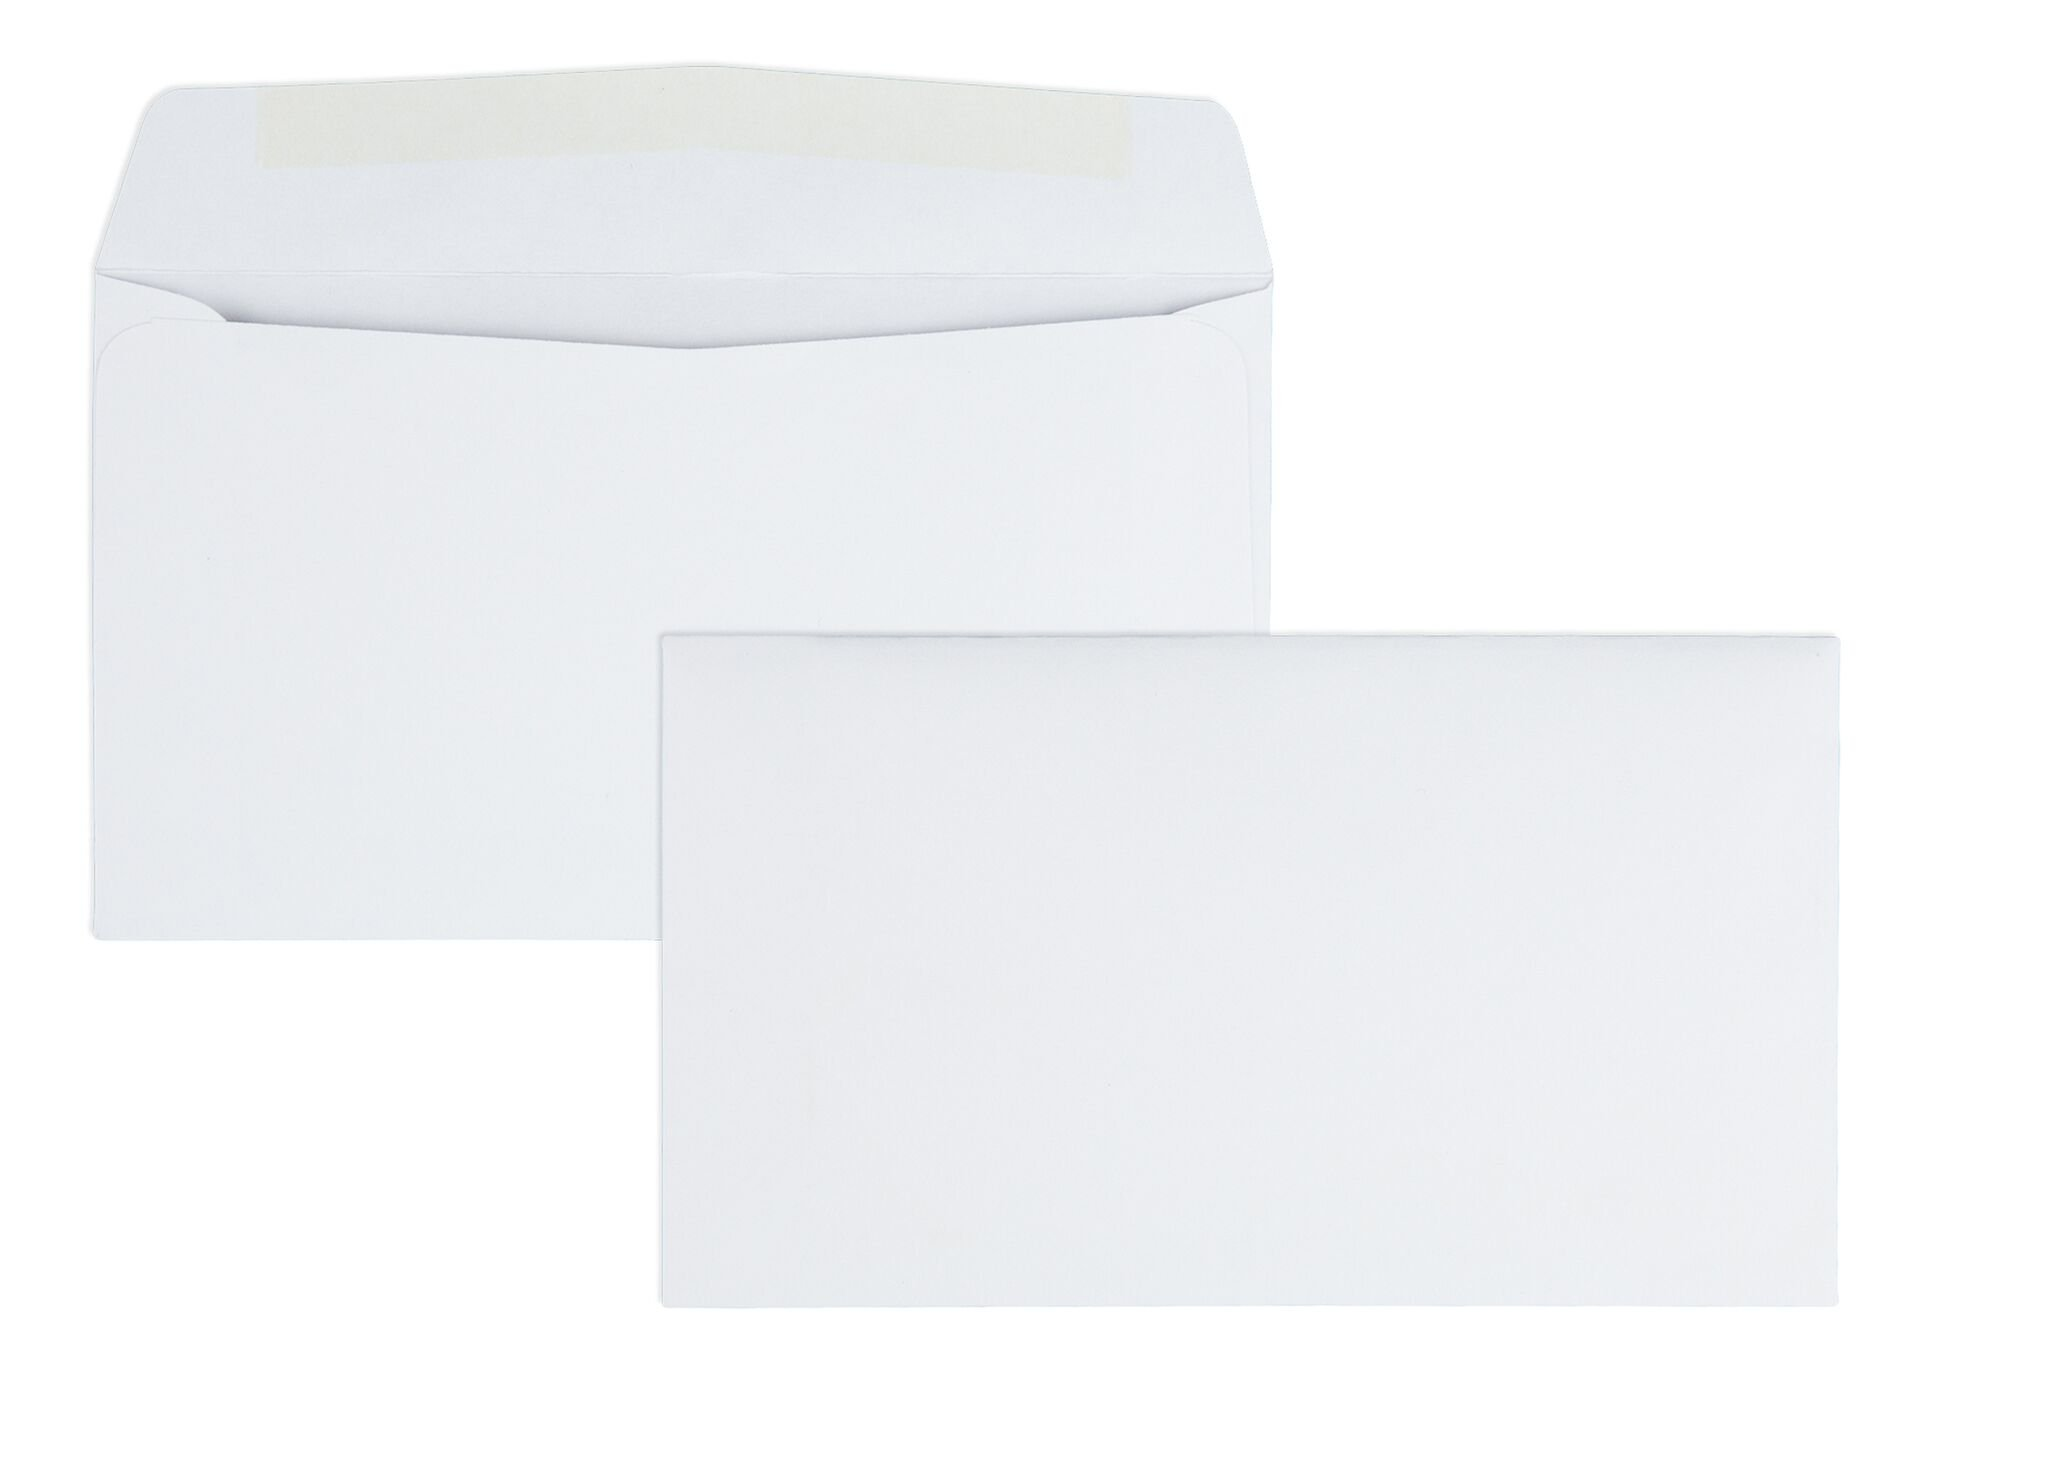 Quality Park #6-3/4 Business Envelopes with a Gummed Flap for Standard Remittance Business Mailing, 24 lb White Wove, 5-3/8 x 6-1/2, 500 per Box (90070)